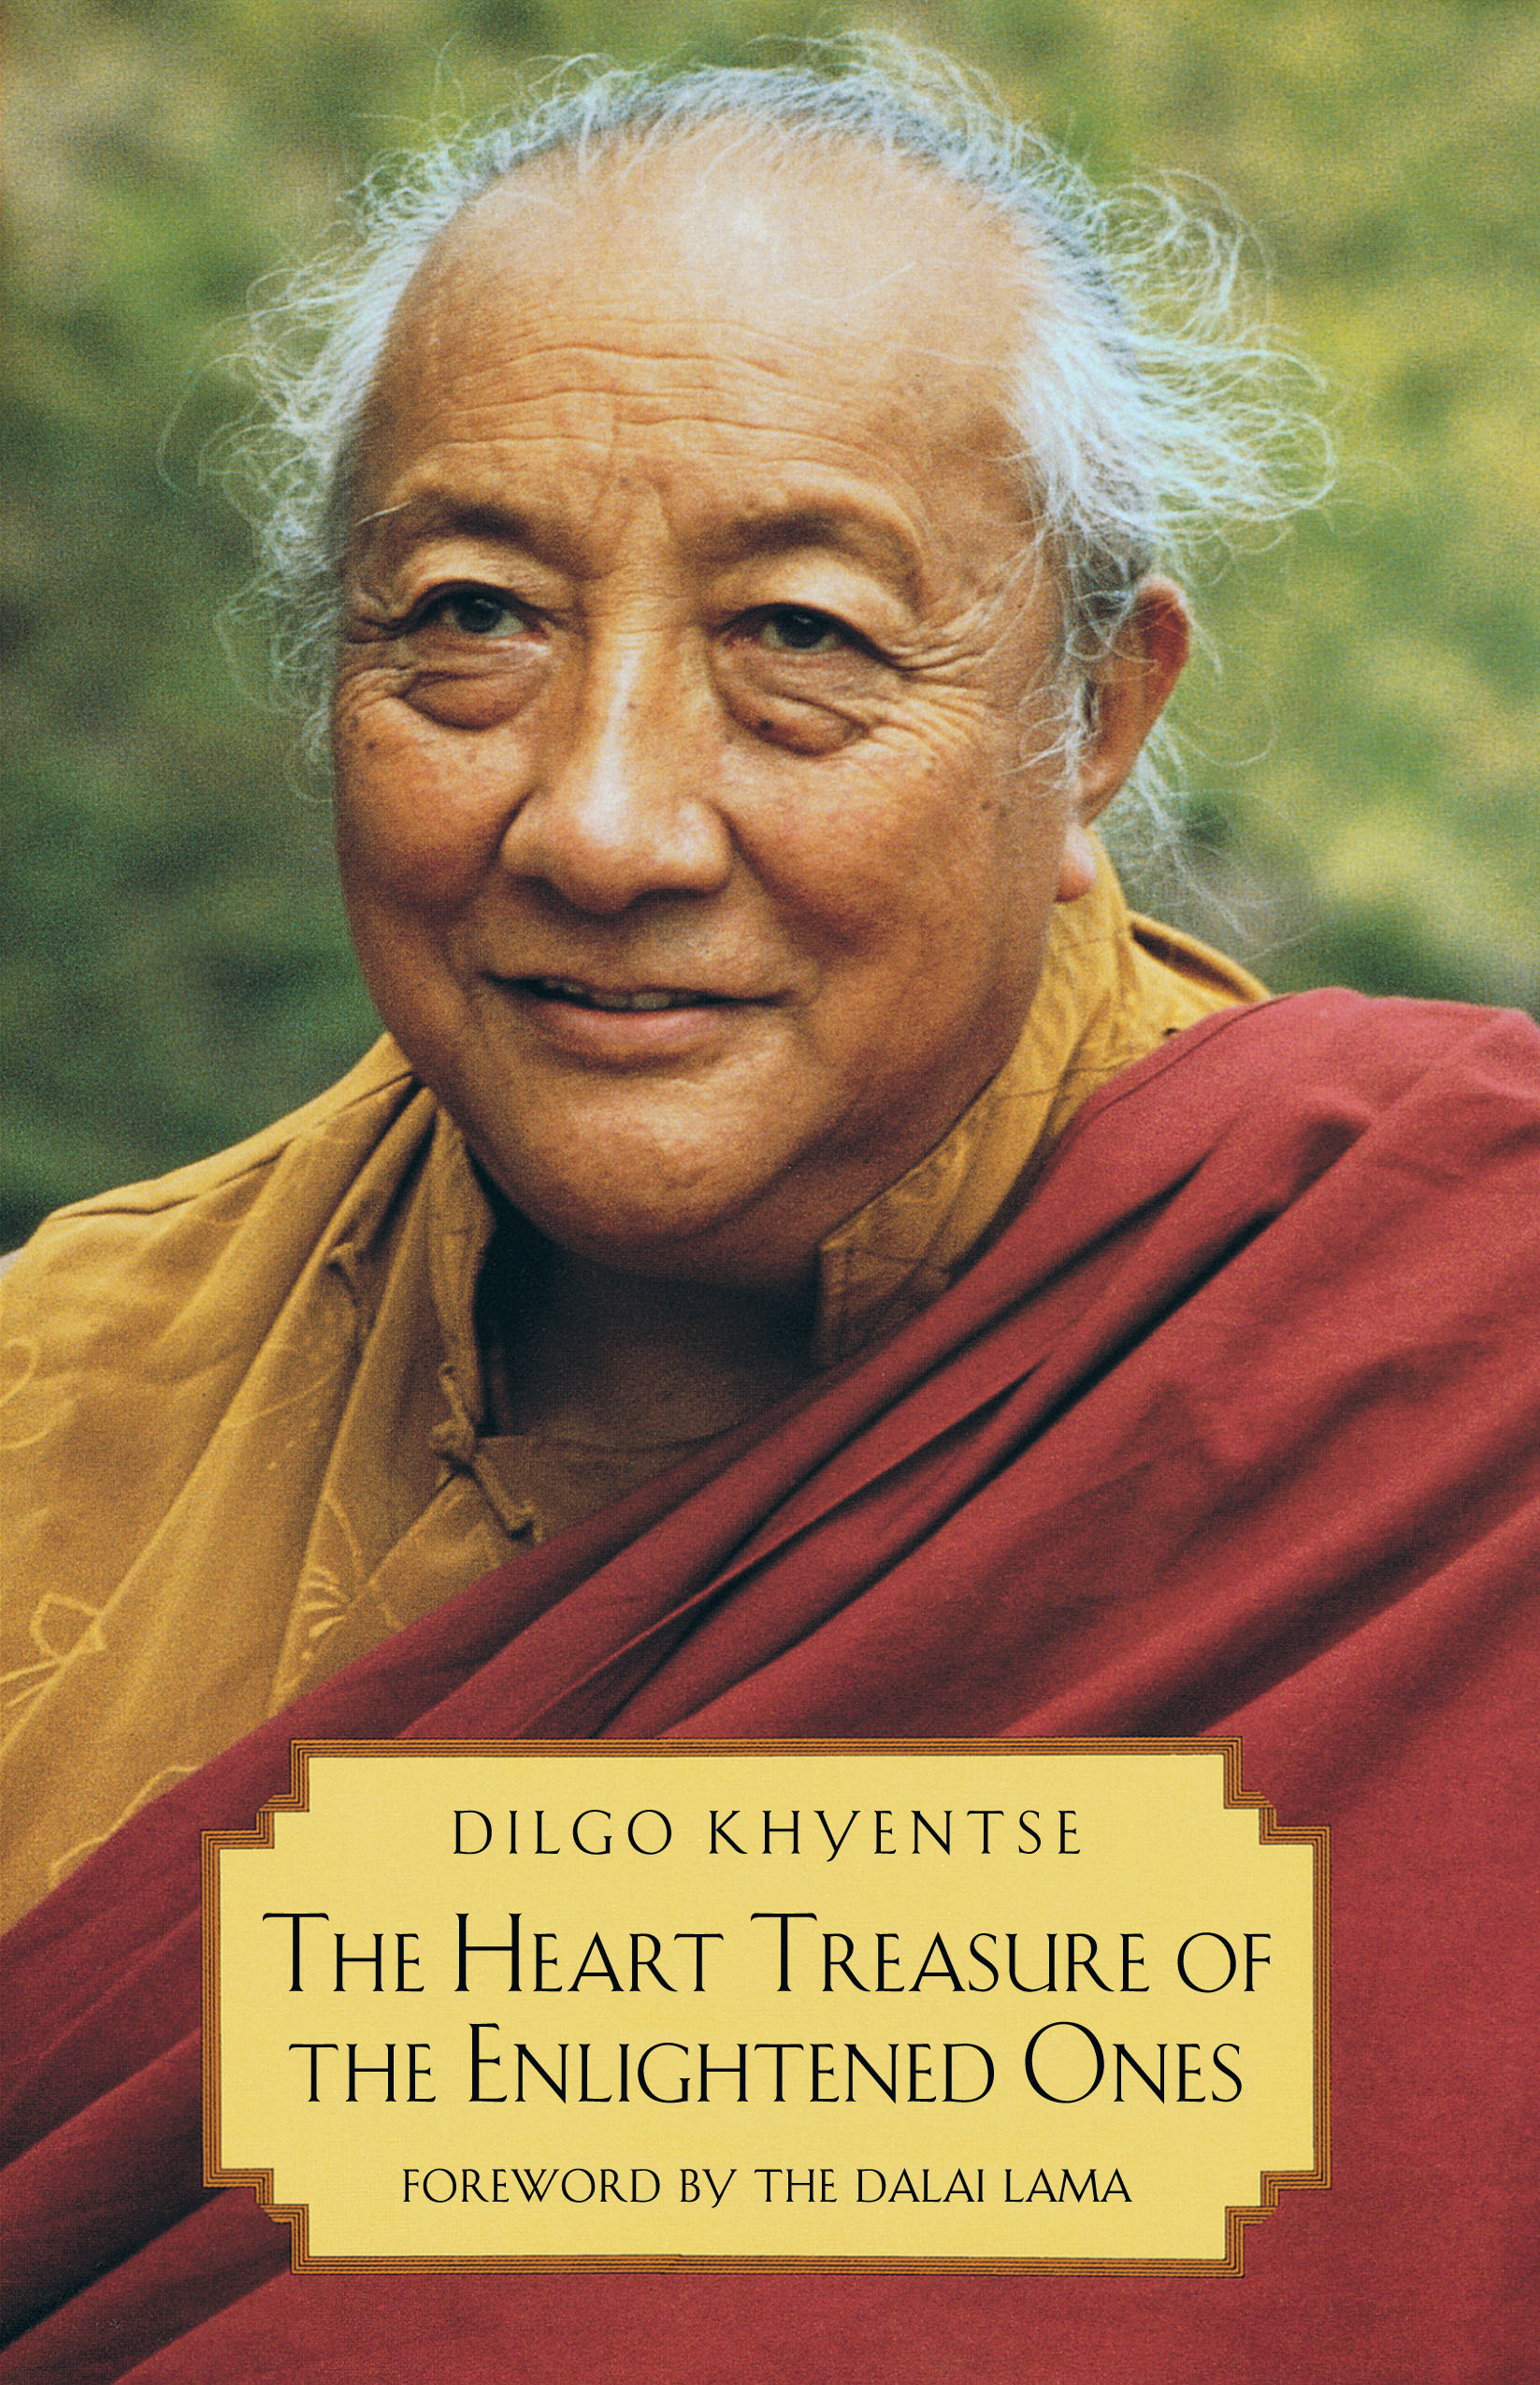 The Heart Treasure of the Enlightened Ones: The Practice of View, Meditation, and Action